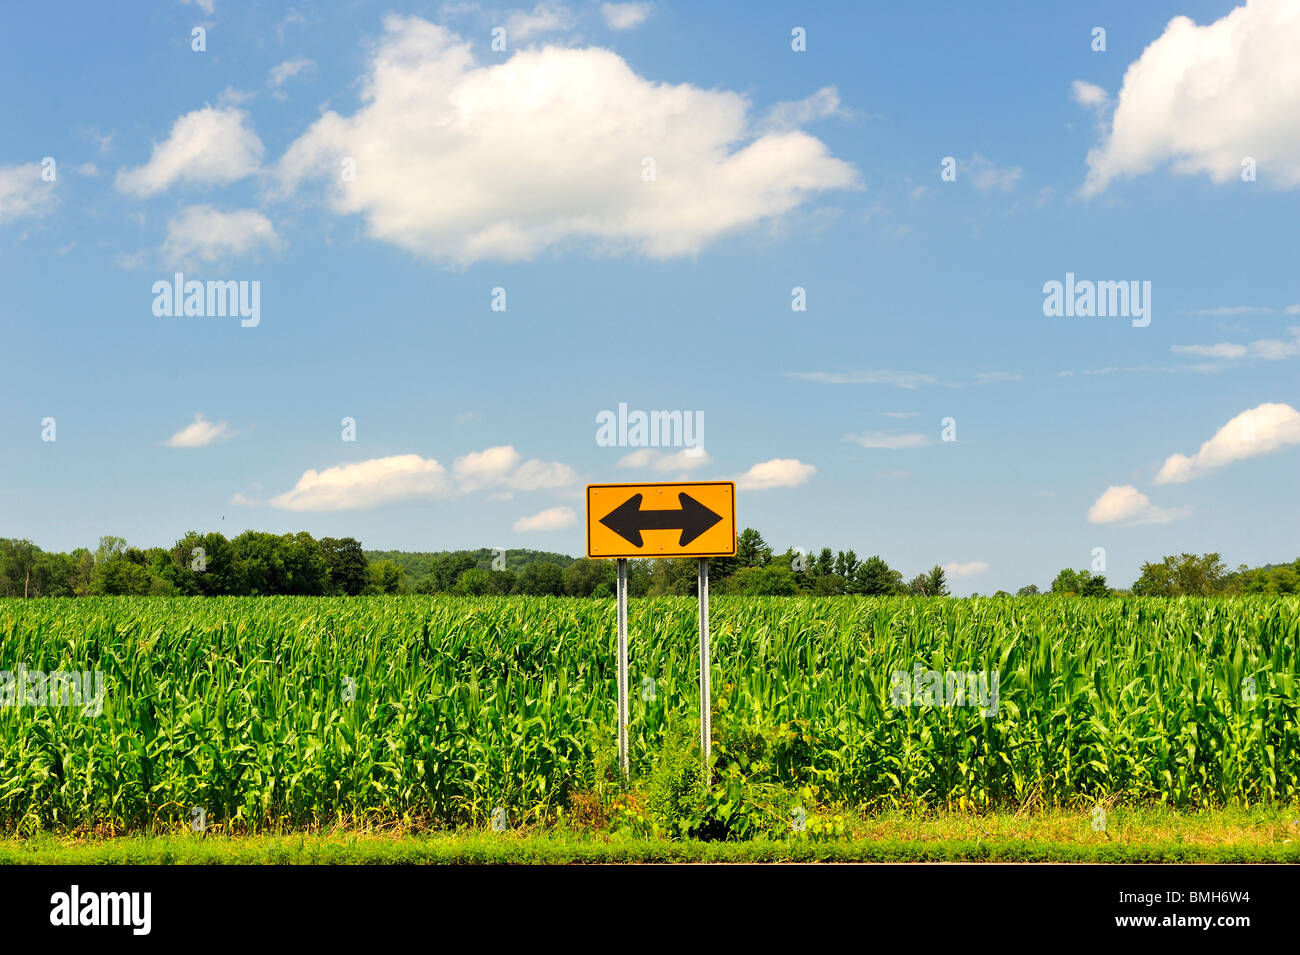 which-way-should-i-go-quirky-two-way-arrow-sign-in-cornfield-blue-BMH6W4.jpg